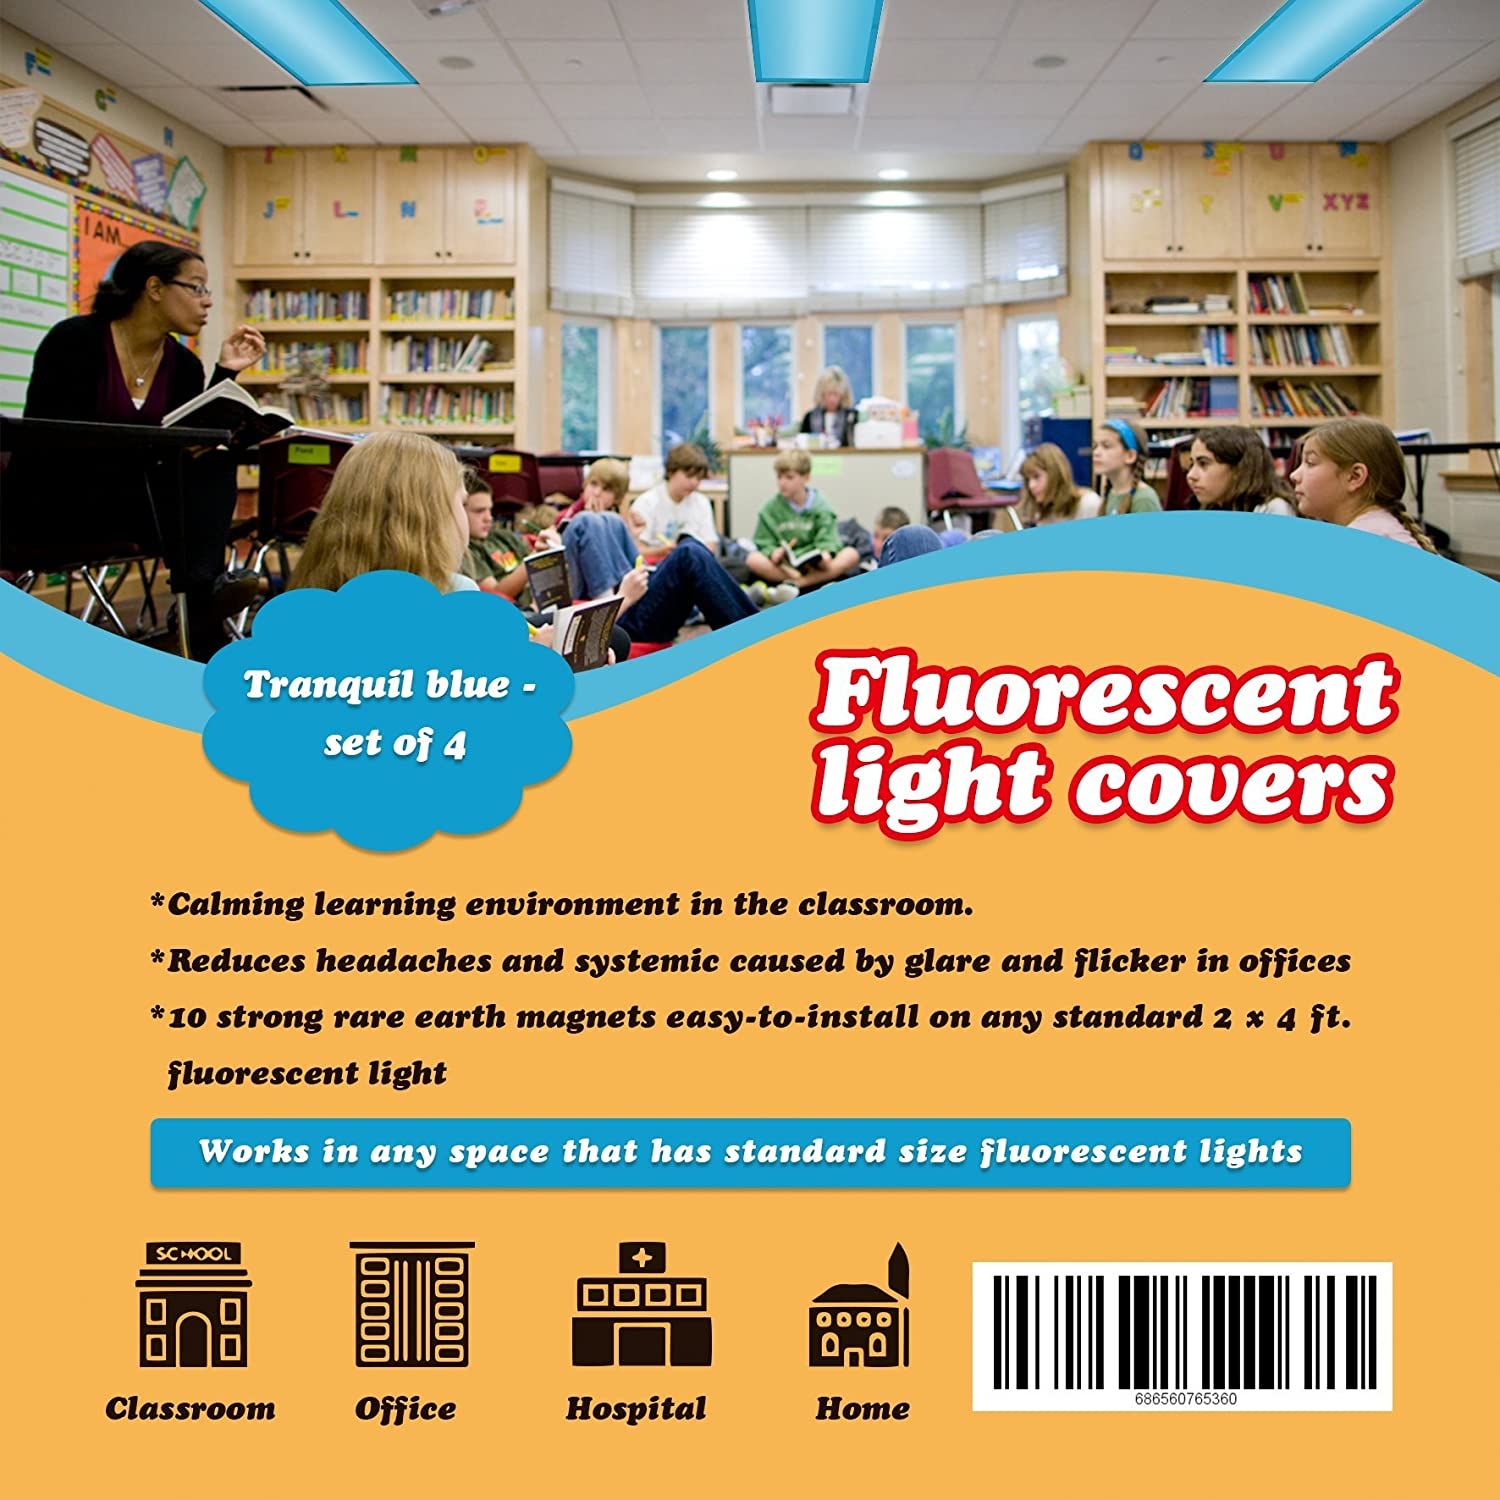 Fluorescent Light Cover (4 pack; tranquil blue). Flame-Retardant Fabric, 10 Strong Rare Earth Magnets, Flame Retardant Certification, Reducing Glare Harsh Flicker, Used in Classroom, Home, Office